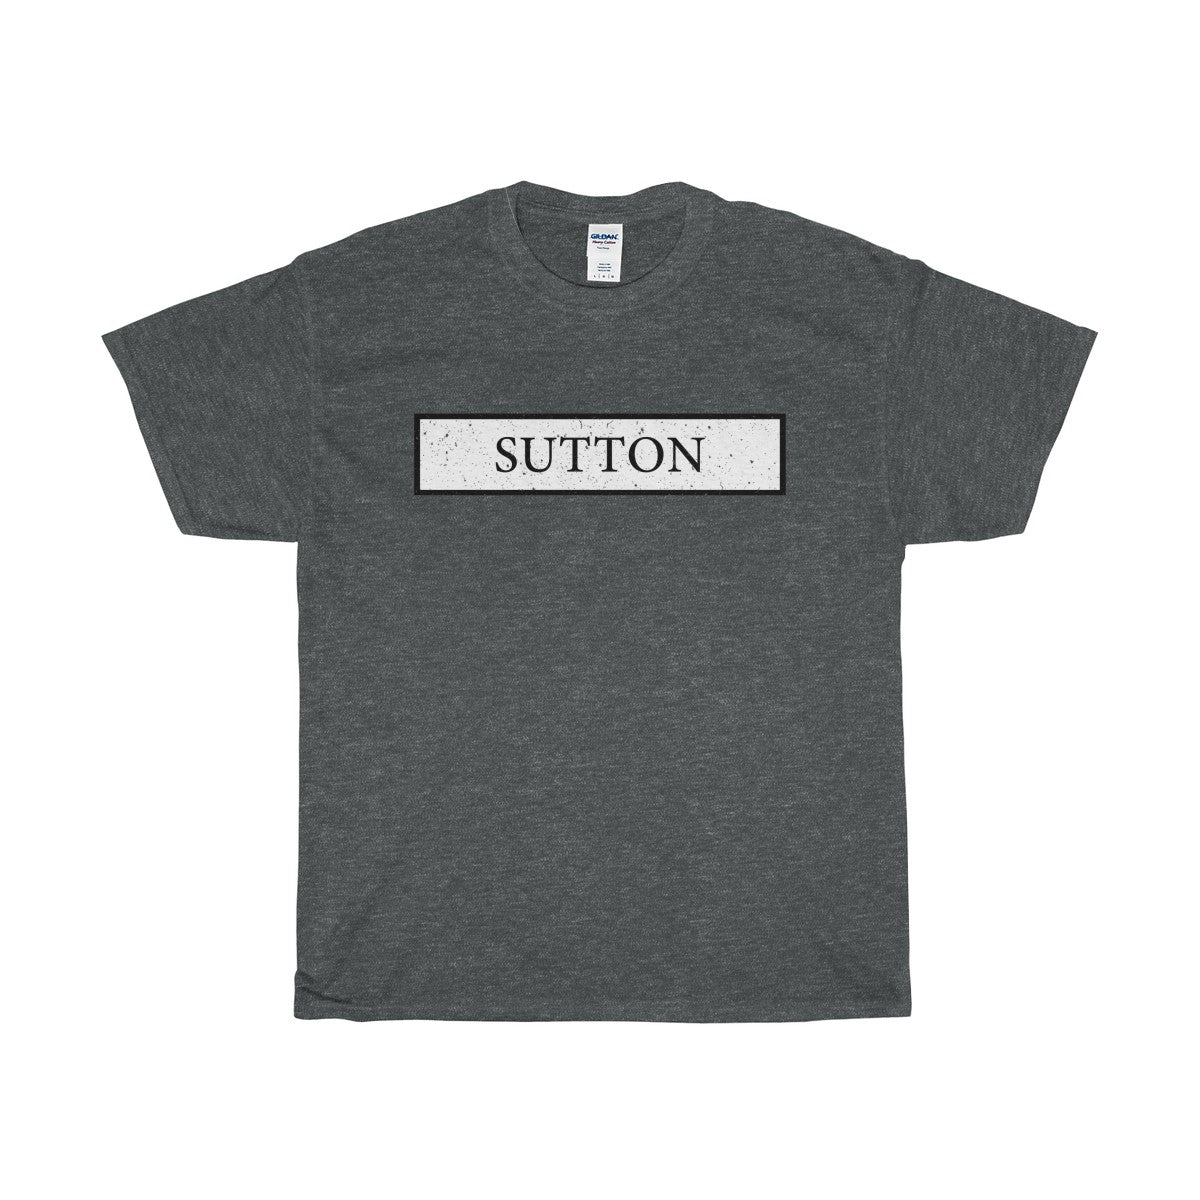 Sutton Road Sign T-Shirt